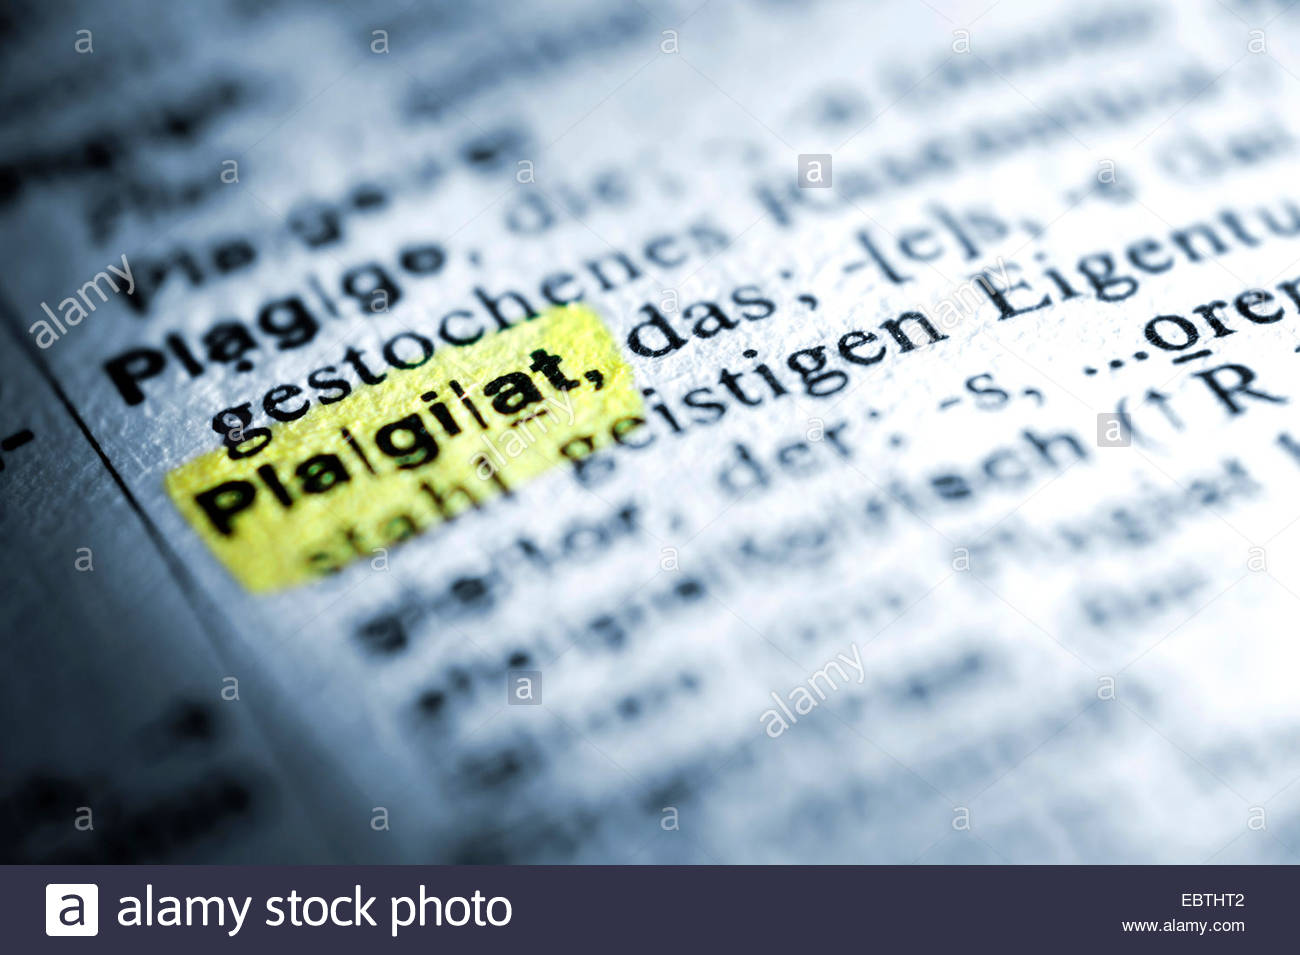 German word plagiat, plagiarism, in a dictionary - Stock Image